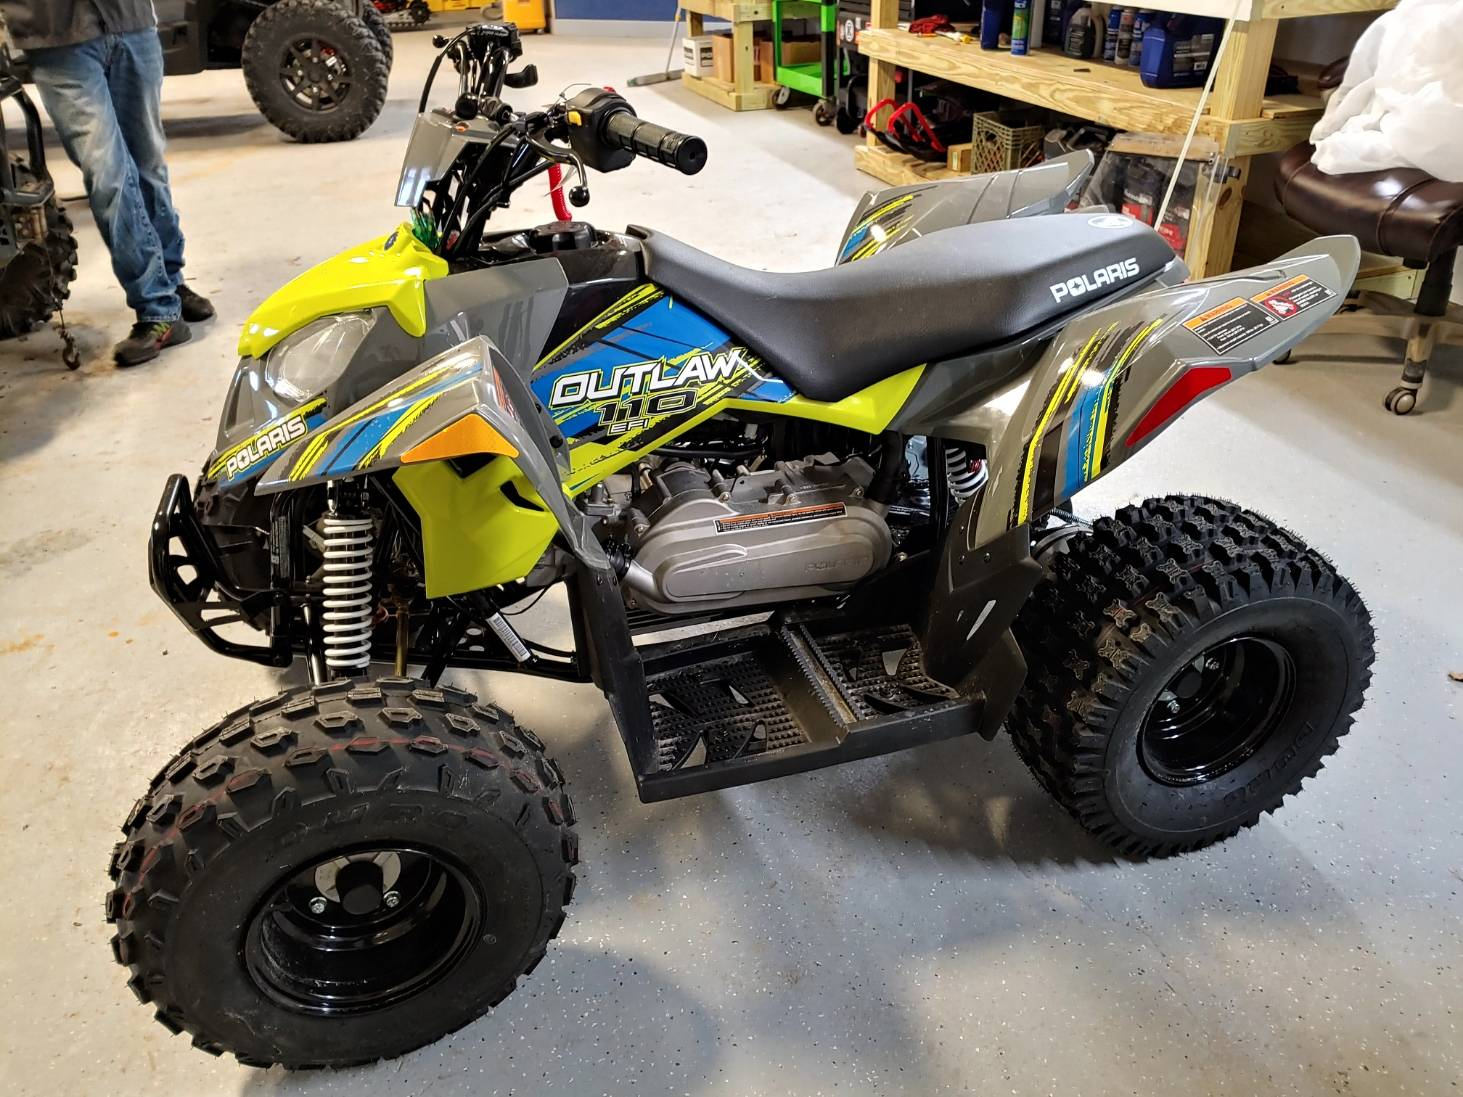 2018 Polaris Outlaw 110 in Malone, New York - Photo 1